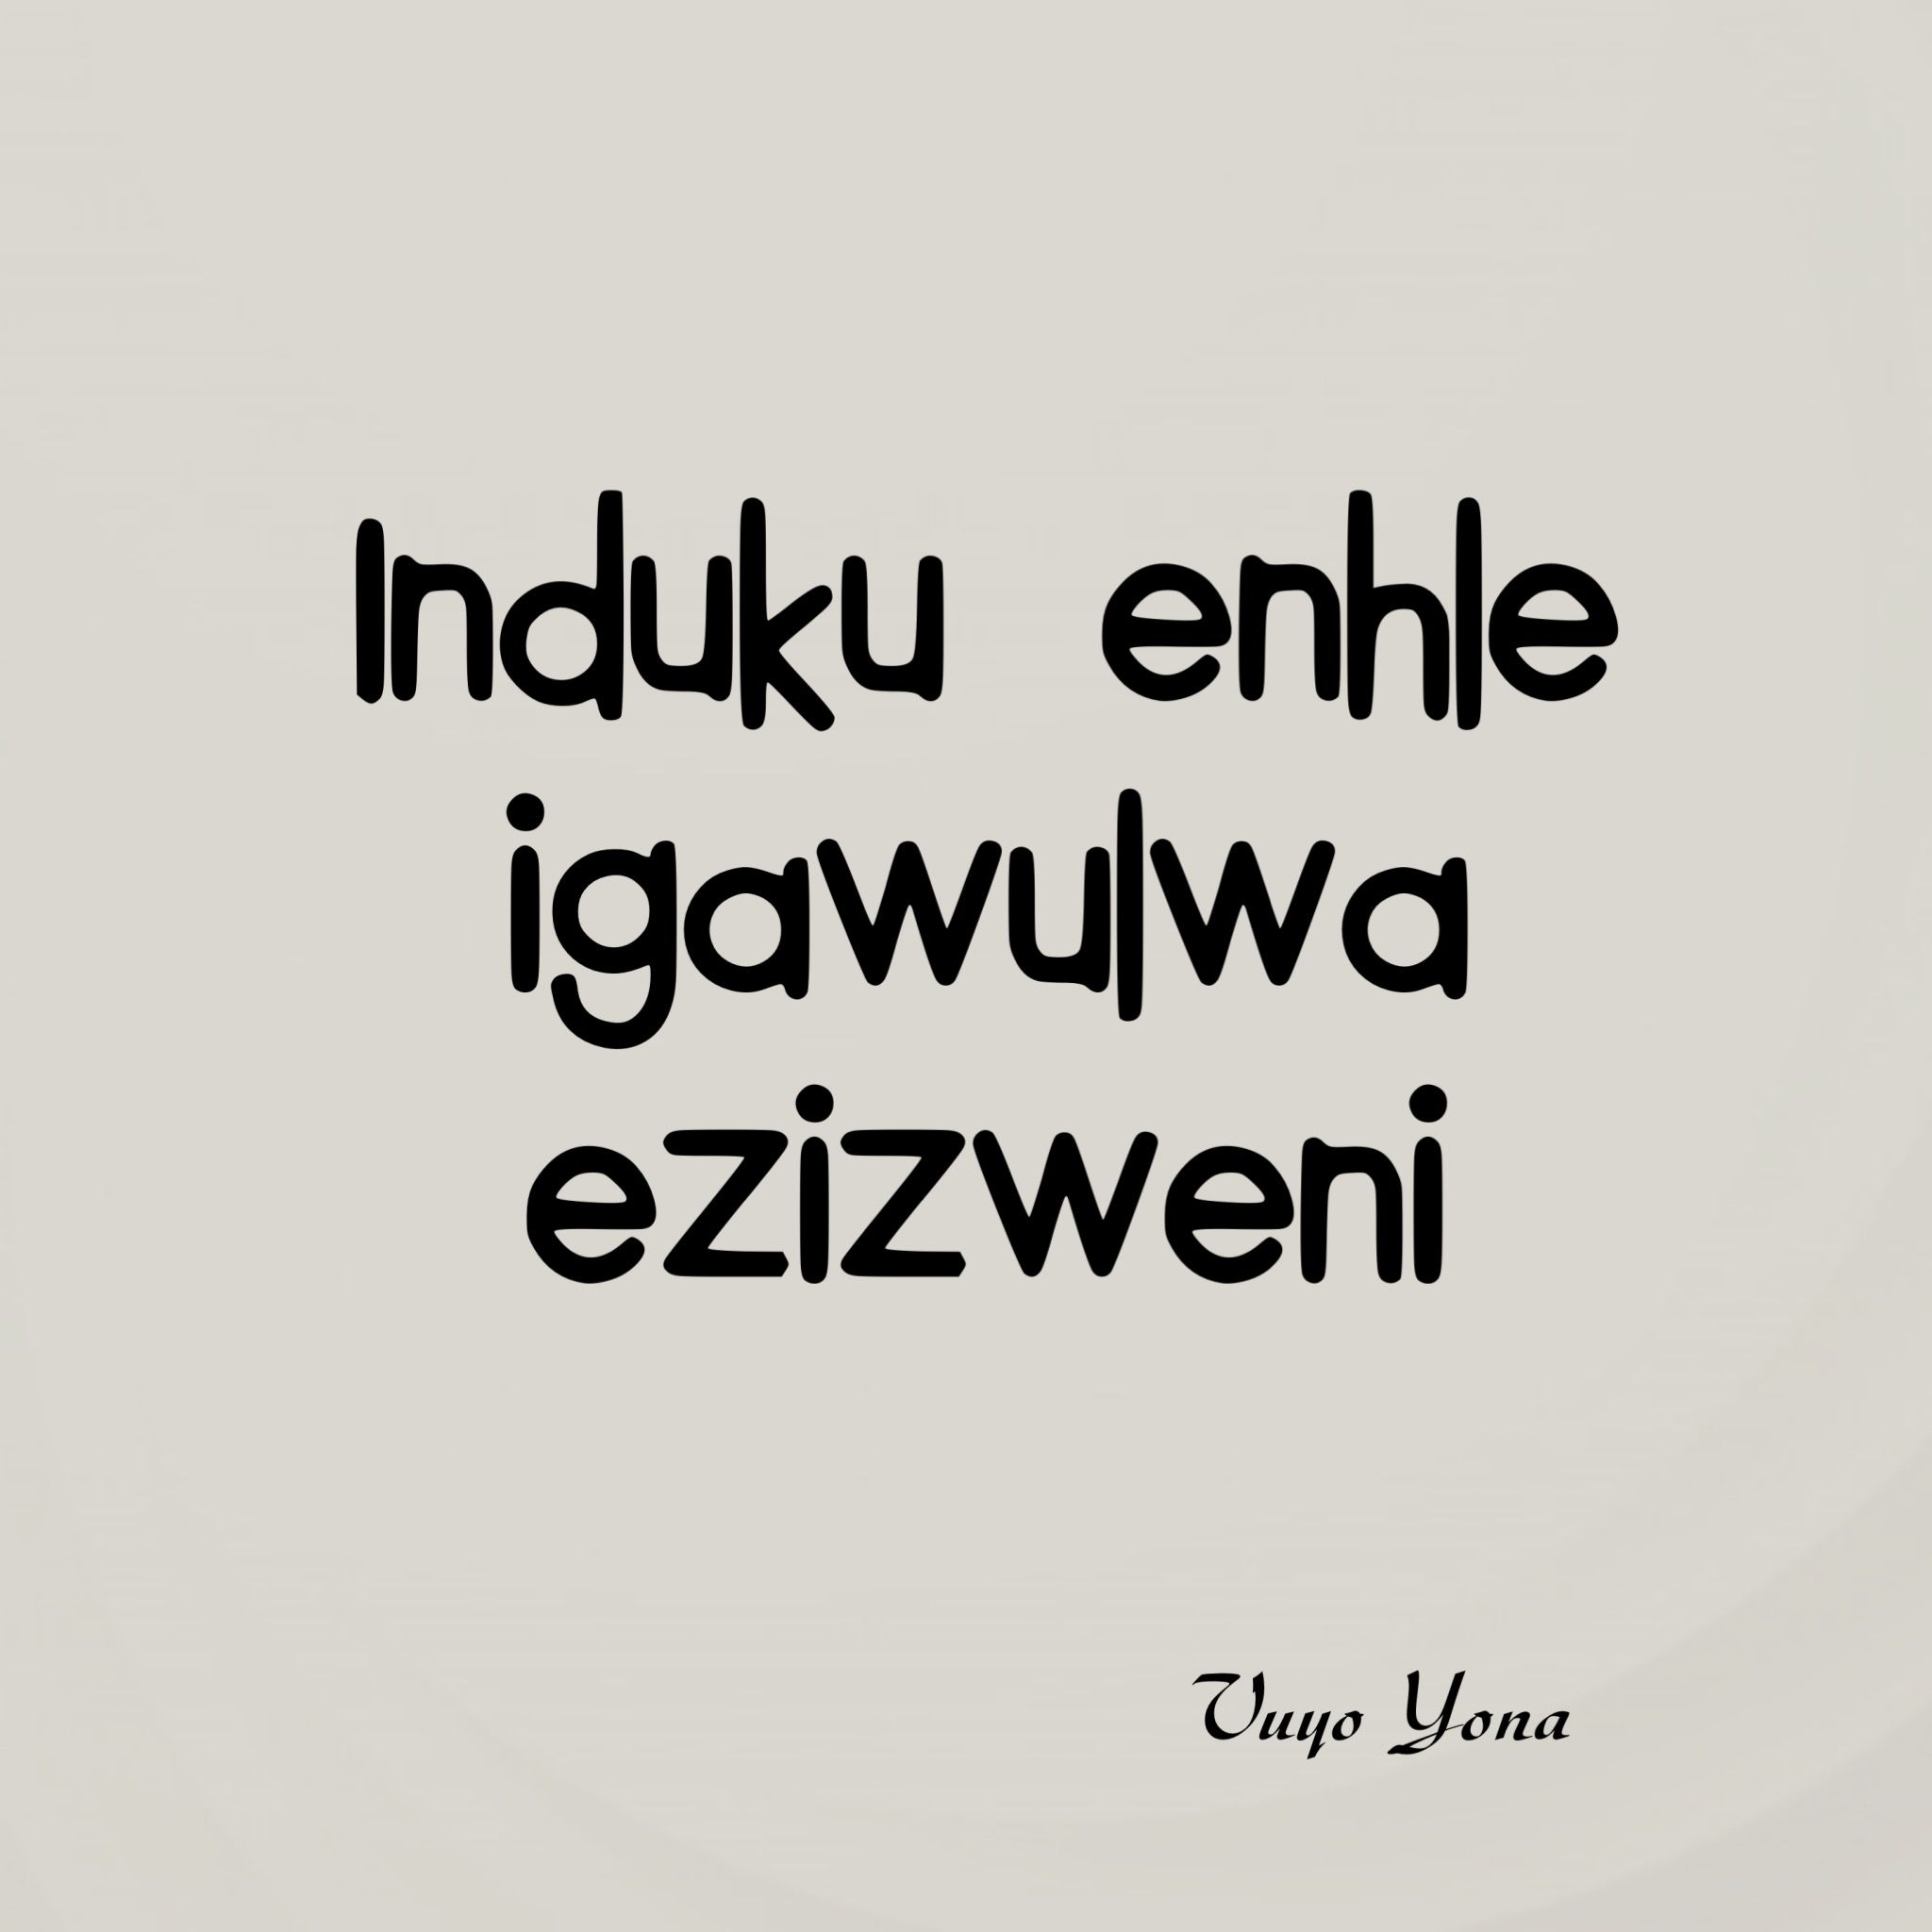 Pin By Sindisiwe Luvuno On Vunokazi Dime Designs Proverbs Deep Thoughts Quotes